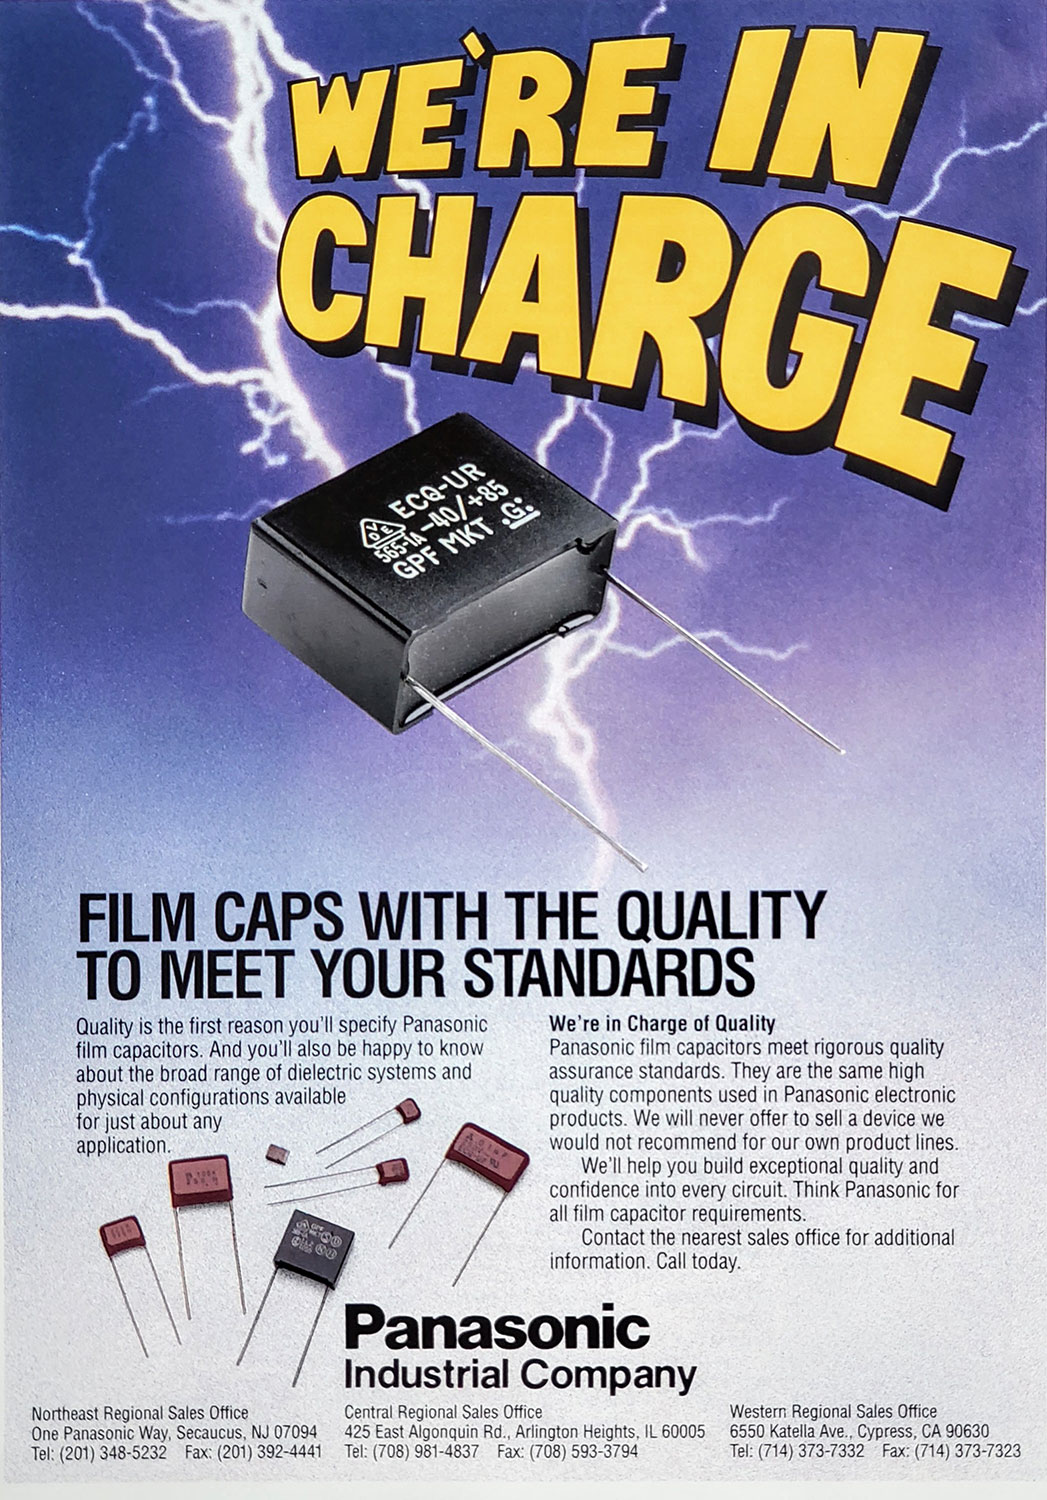 panasonic_we're-in-charge_ad_12